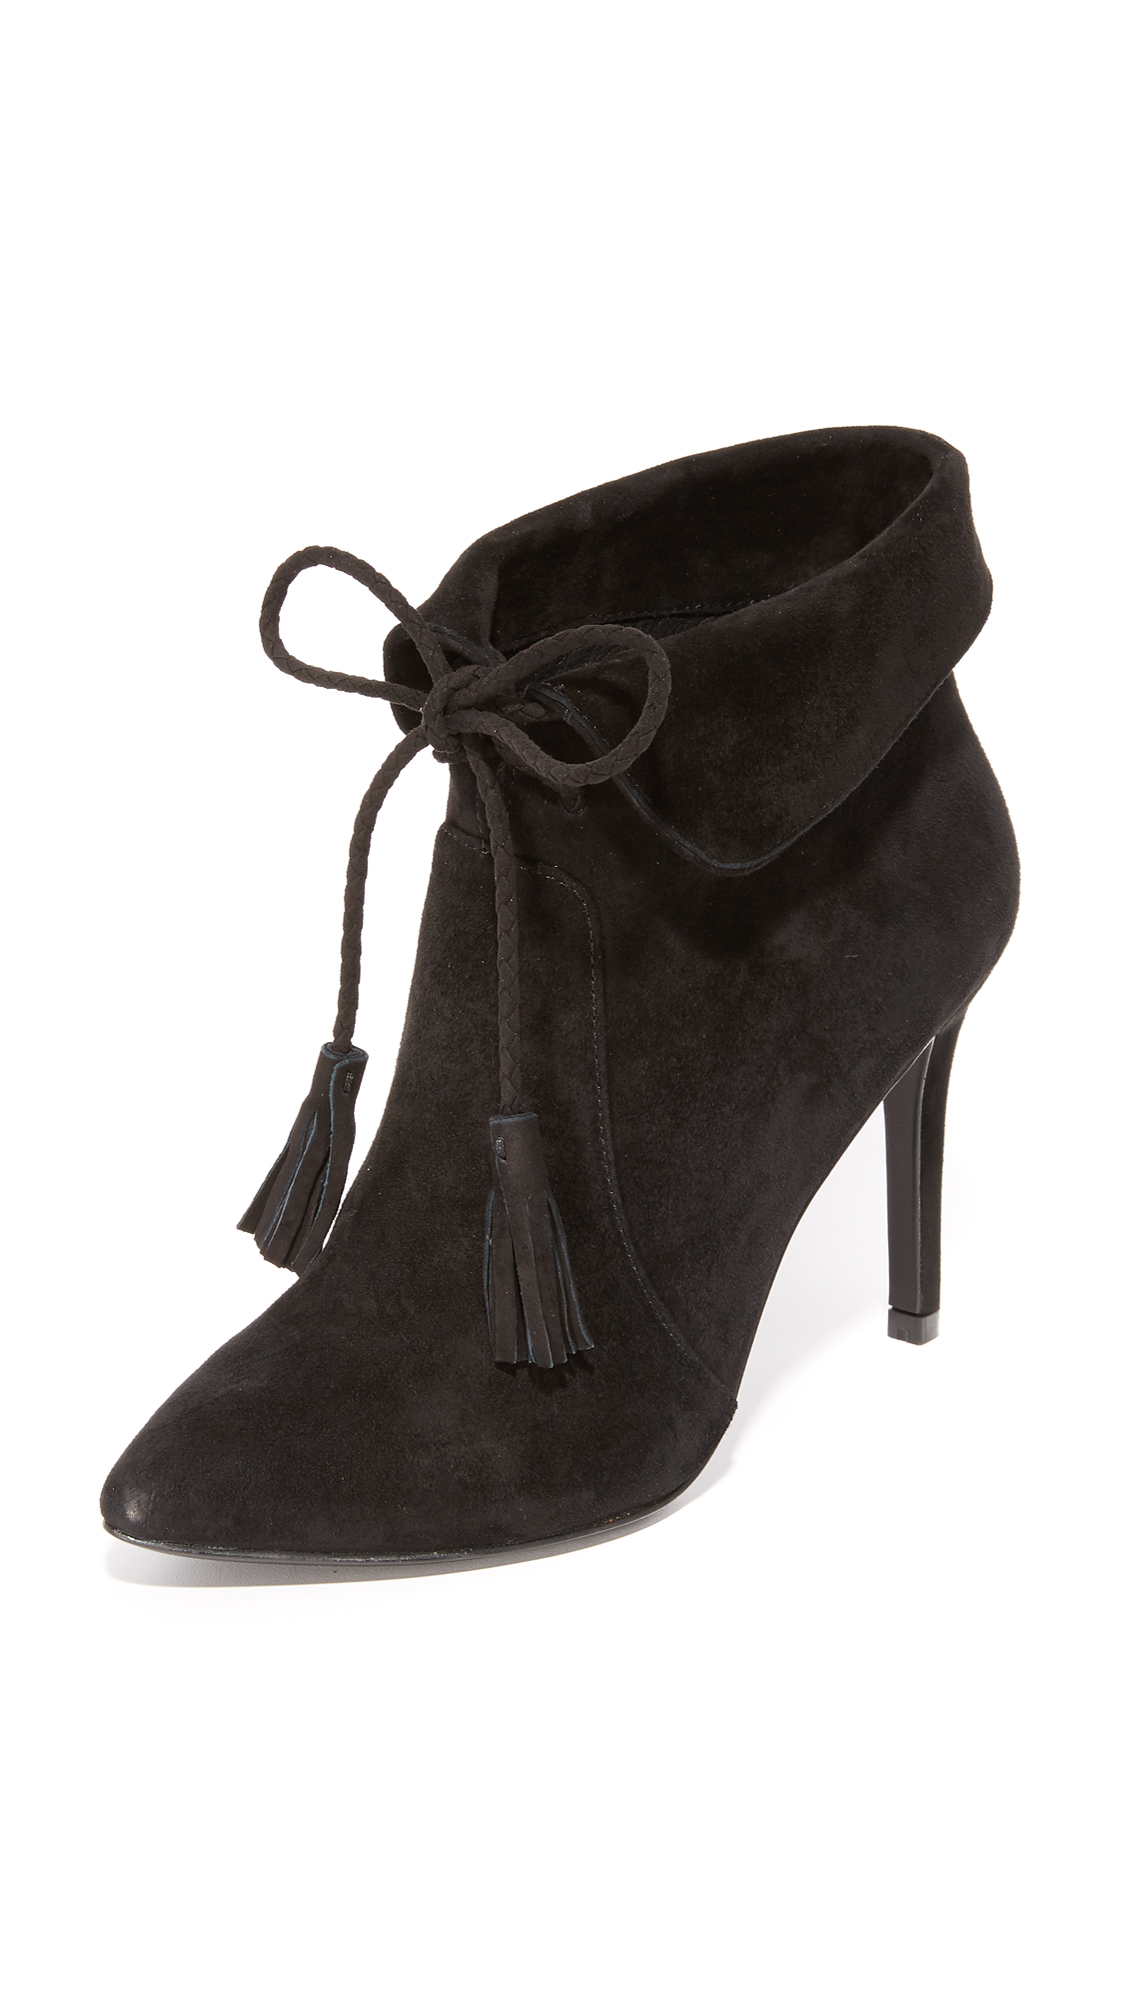 Joie Ciera Tassel Booties - Black at Shopbop